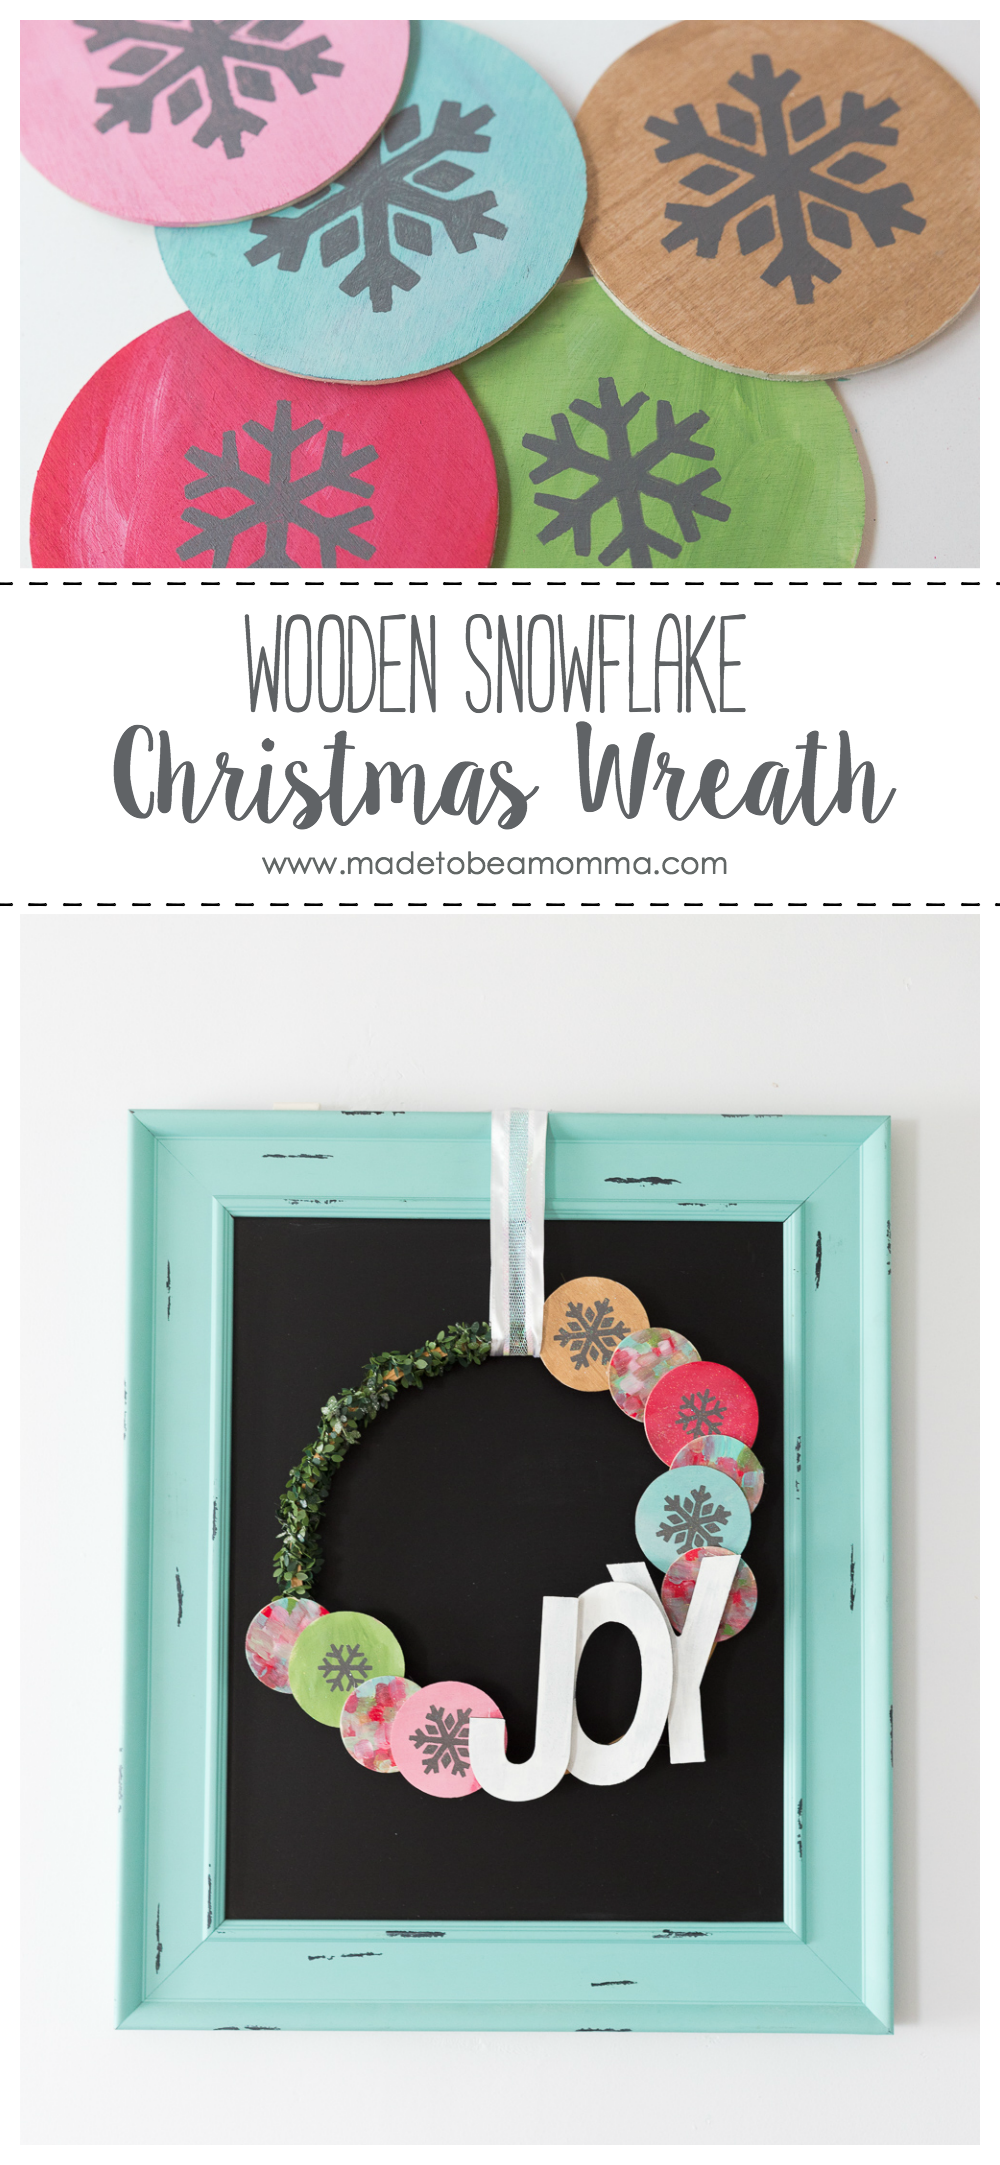 Wooden Snowflake Christmas Wreath: a non traditional Christmas wreath with pops of color, glitter and greenery! Mix and match the colors for any Christmas decor. www.madetobeamomma.com